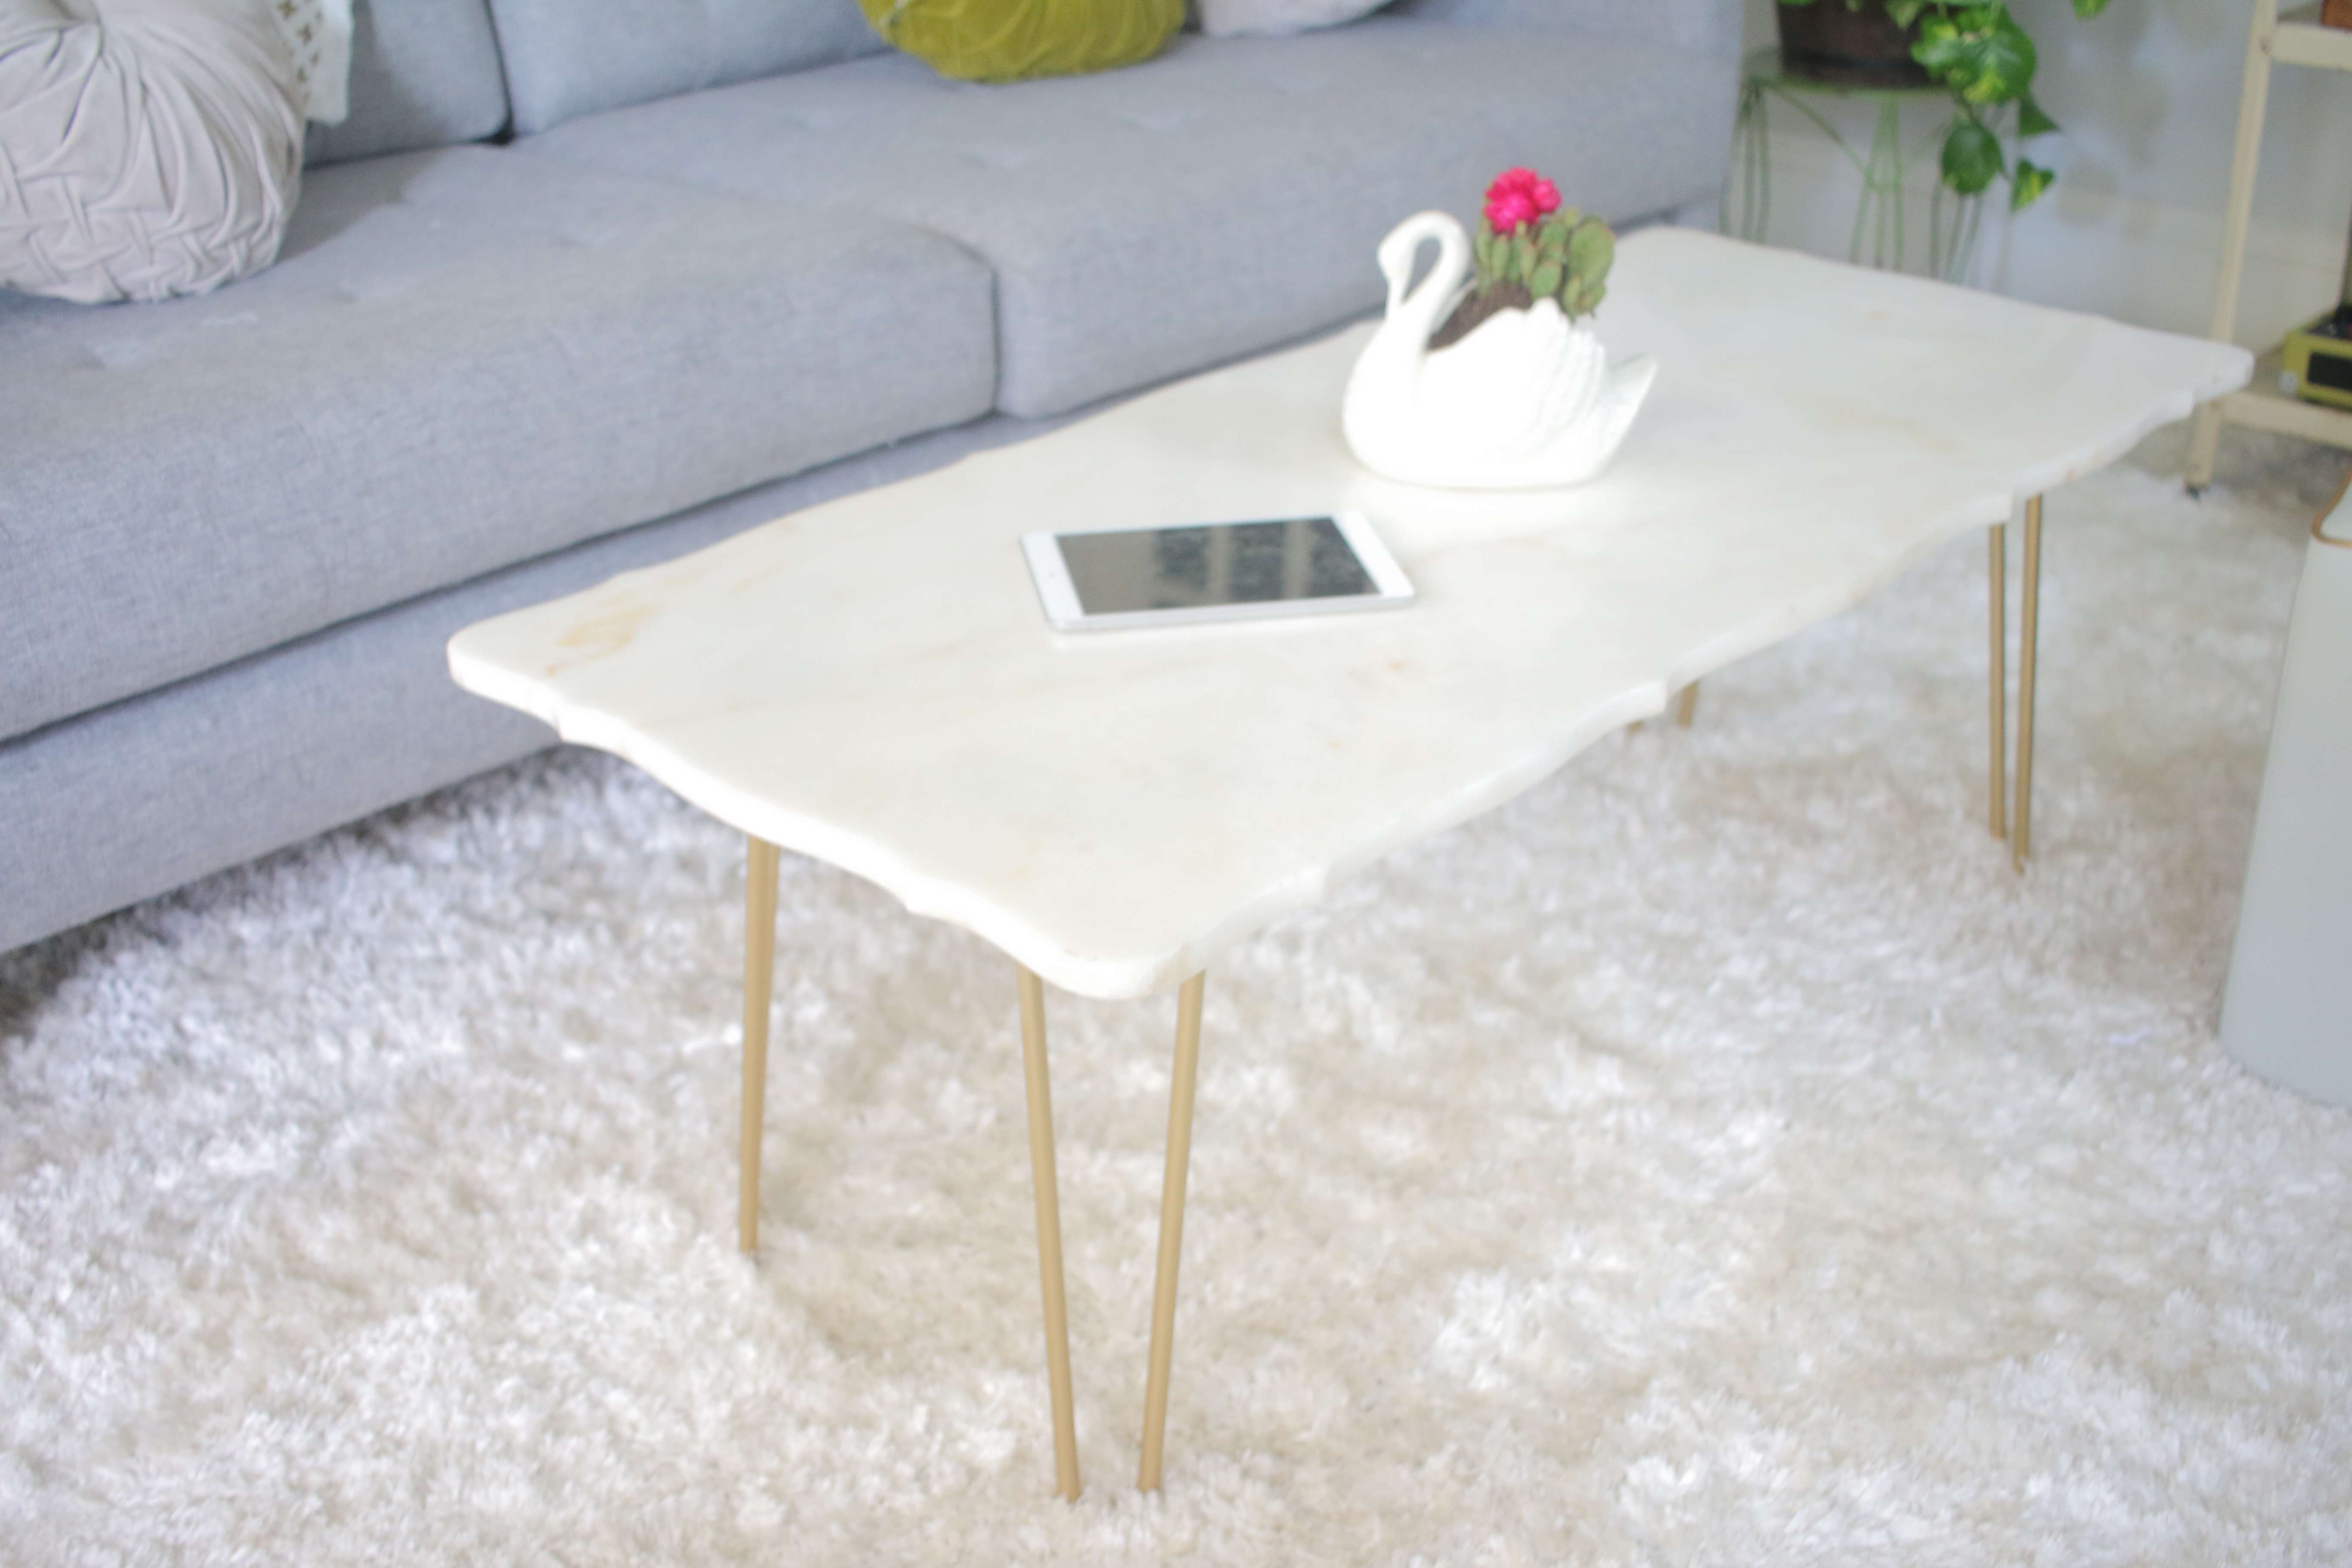 Diy: Marble Coffee Table Intended For Newest Marble Coffee Tables (View 4 of 20)